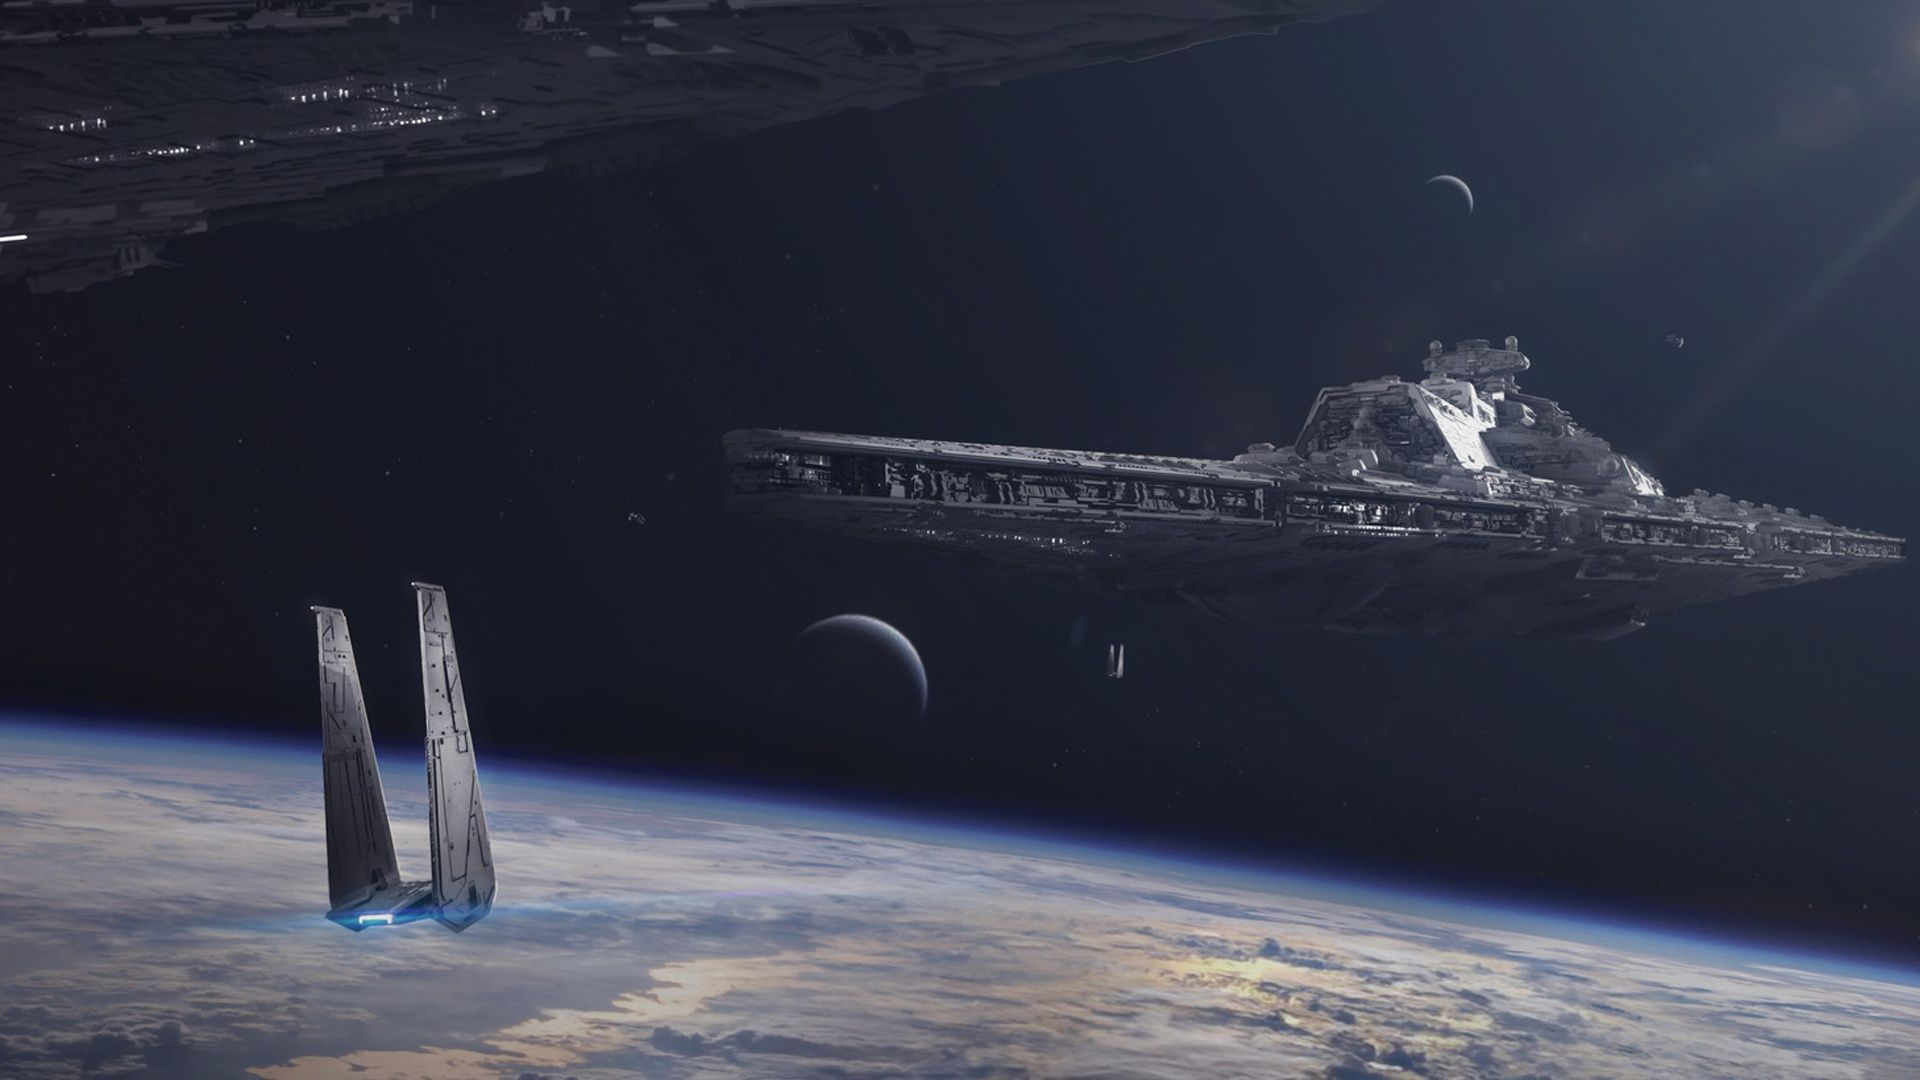 Star Wars Space Wallpapers Top Free Star Wars Space Backgrounds Wallpaperaccess